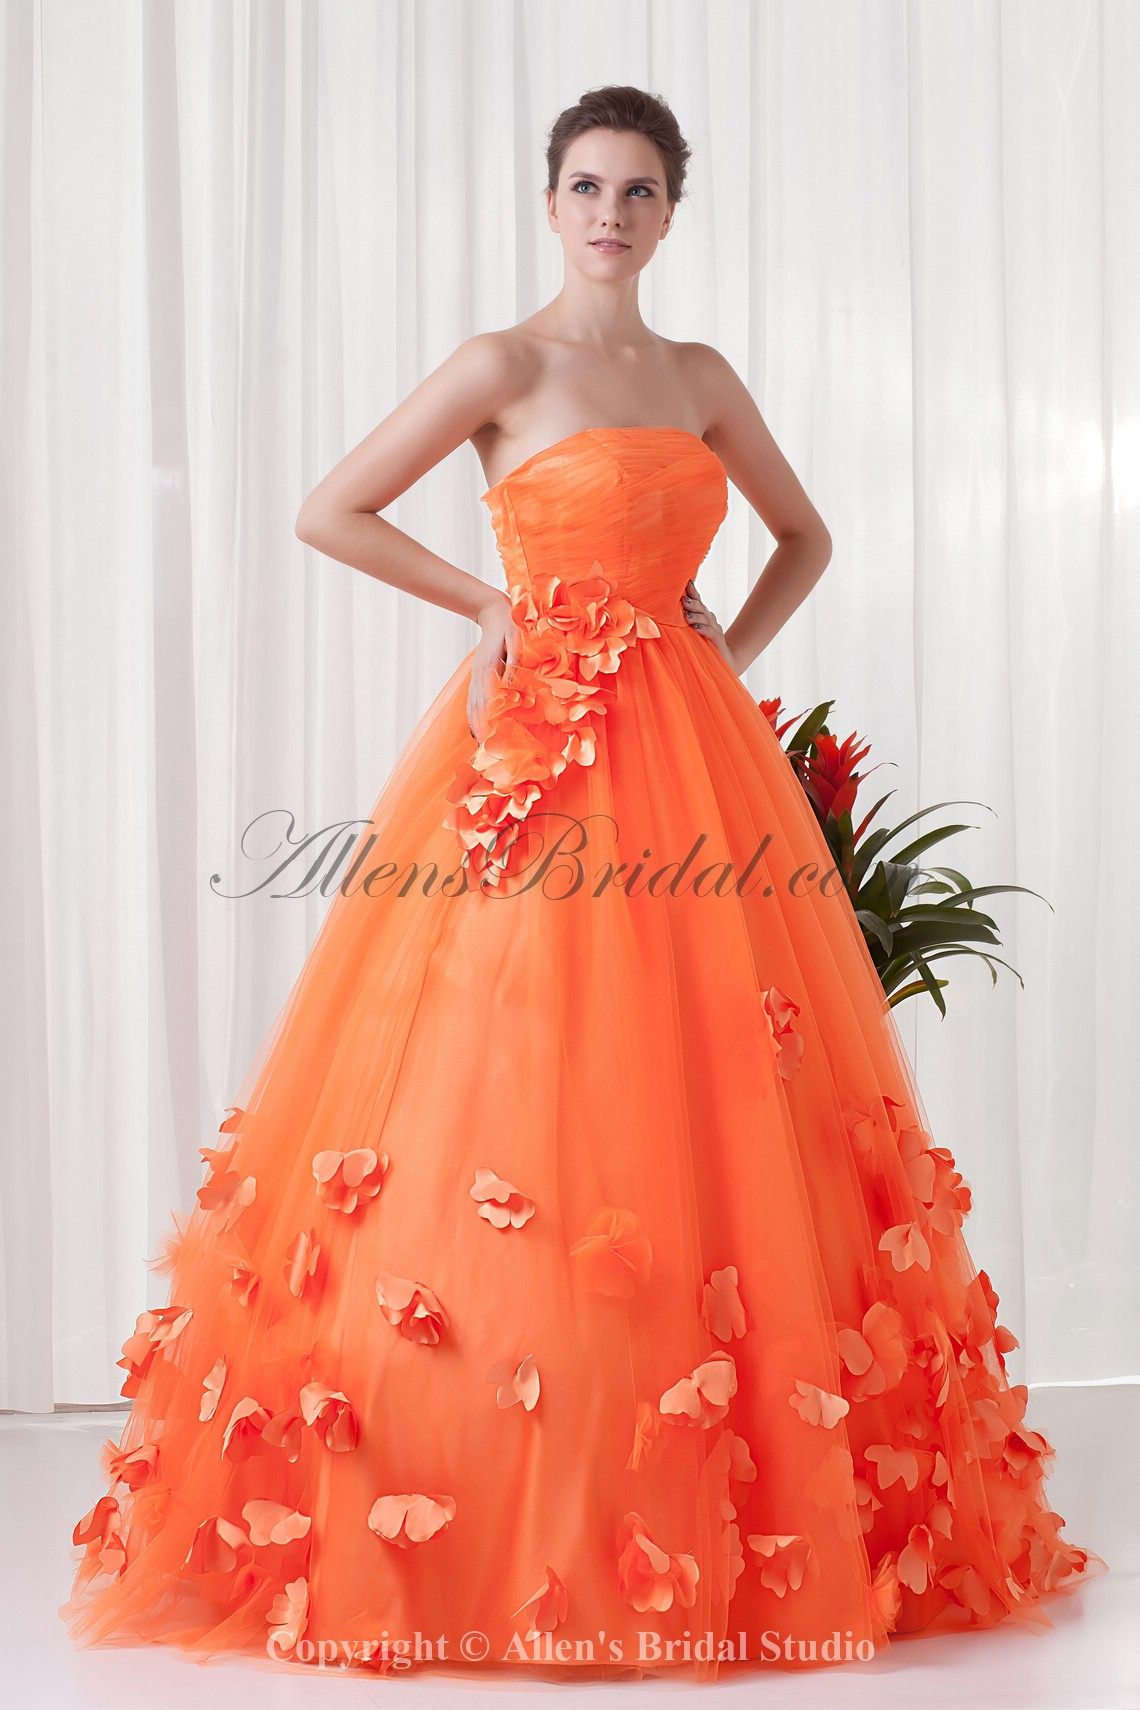 /311-2485/satin-and-net-strapless-ball-gown-floor-length-applique-prom-dress.jpg